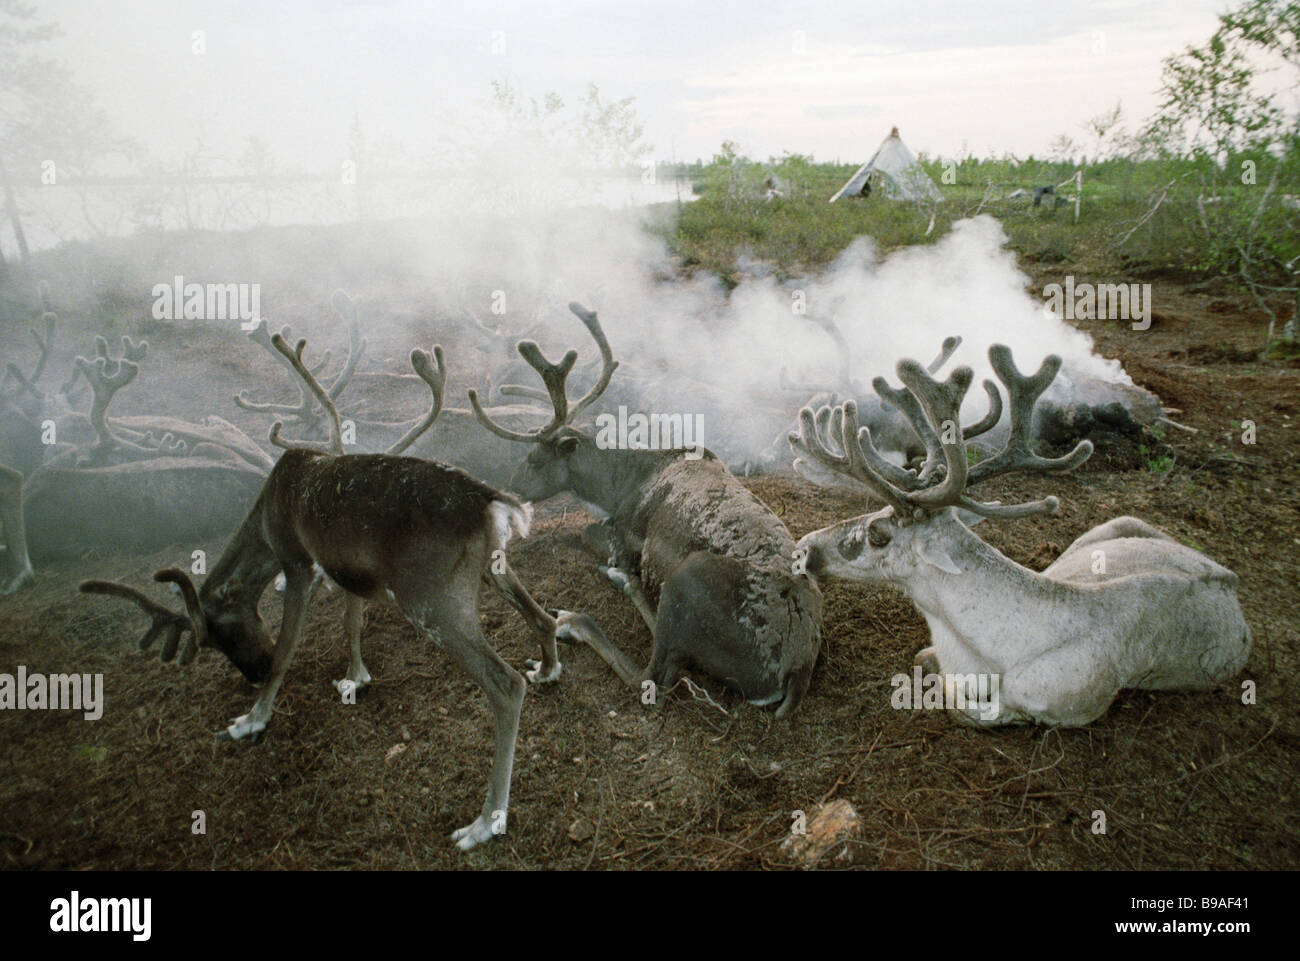 Reindeer saving from midges at a smudge - Stock Image